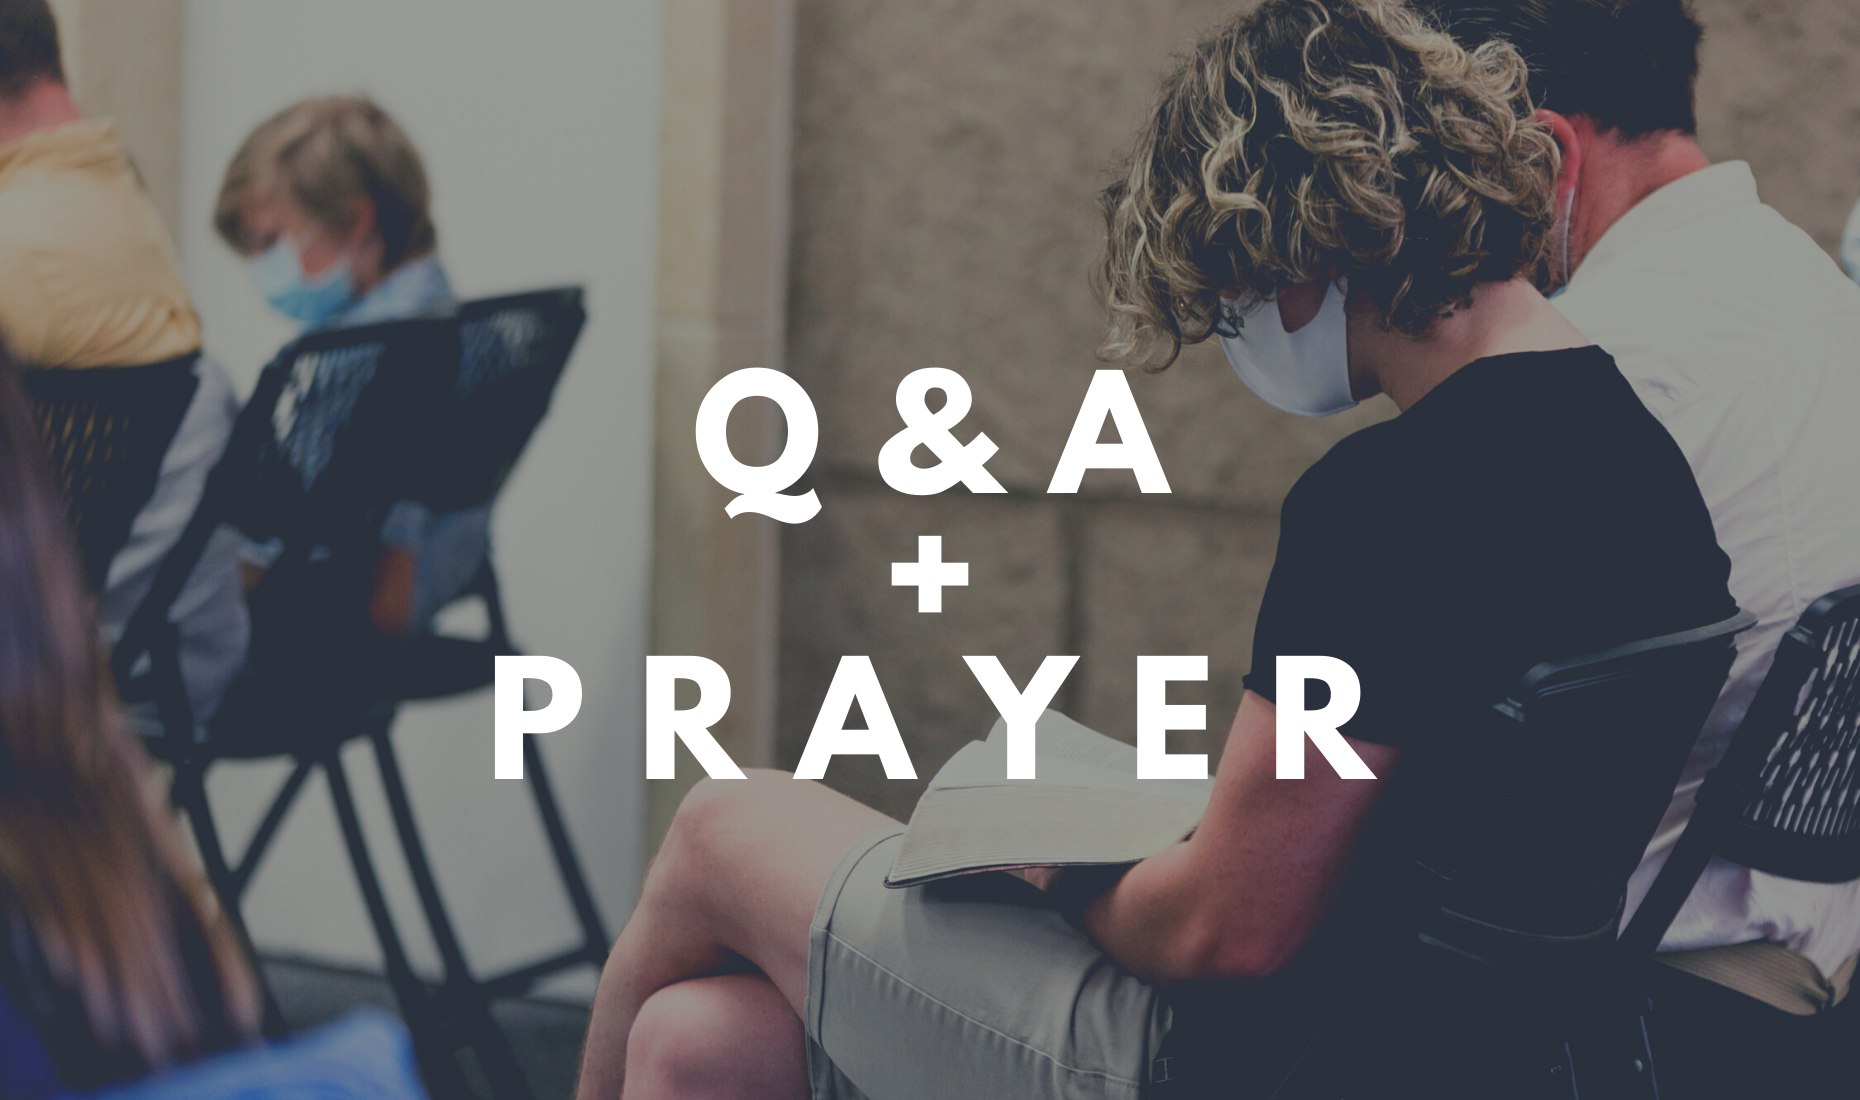 Q&A and Prayer image